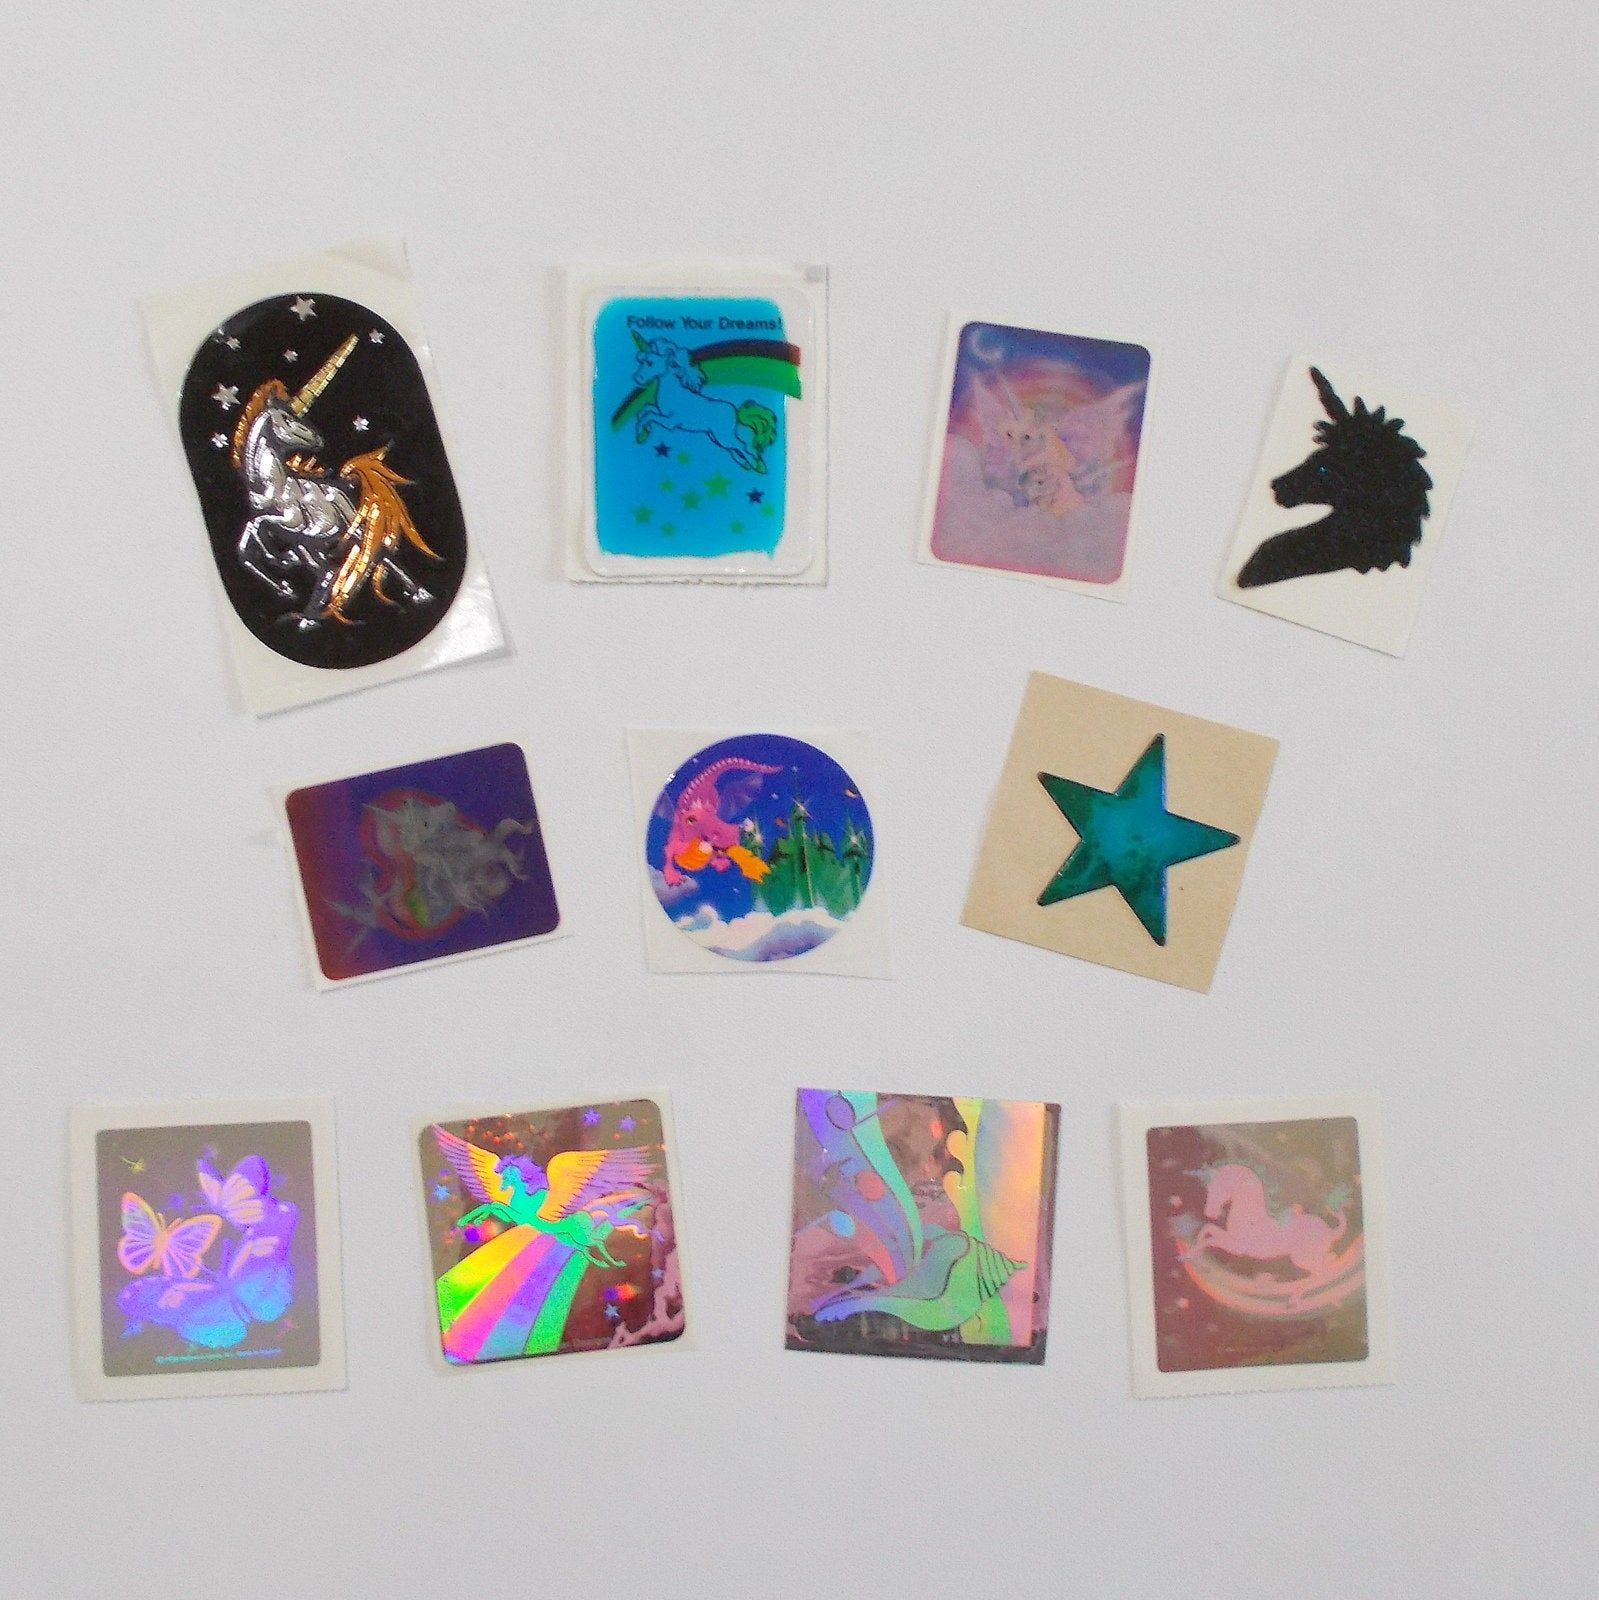 Lot of Vintage Stickers HOLOGRAM Animals Space Ship Bunny  VTG 80s 90s